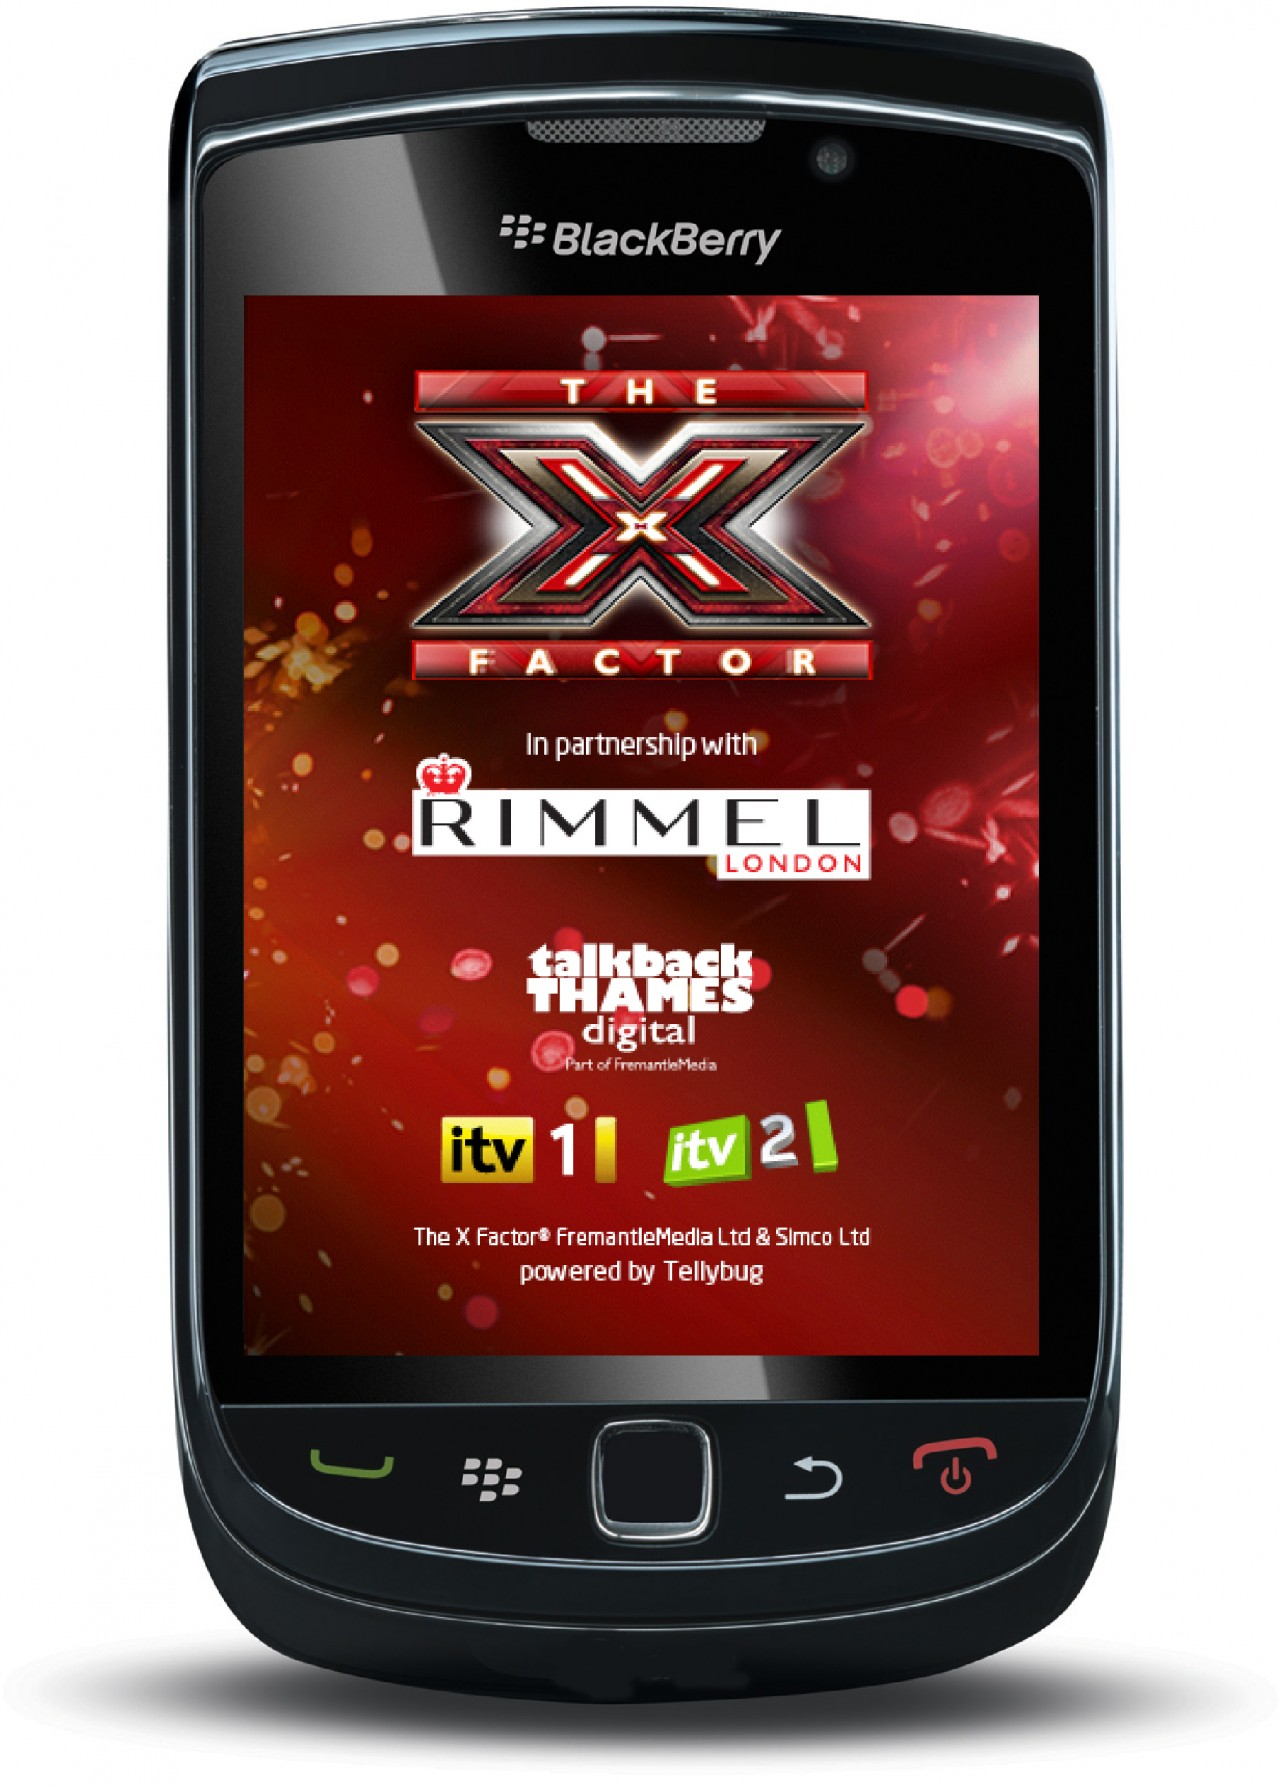 BlackBerry app for The X Factor created by Apadmi | The Drum